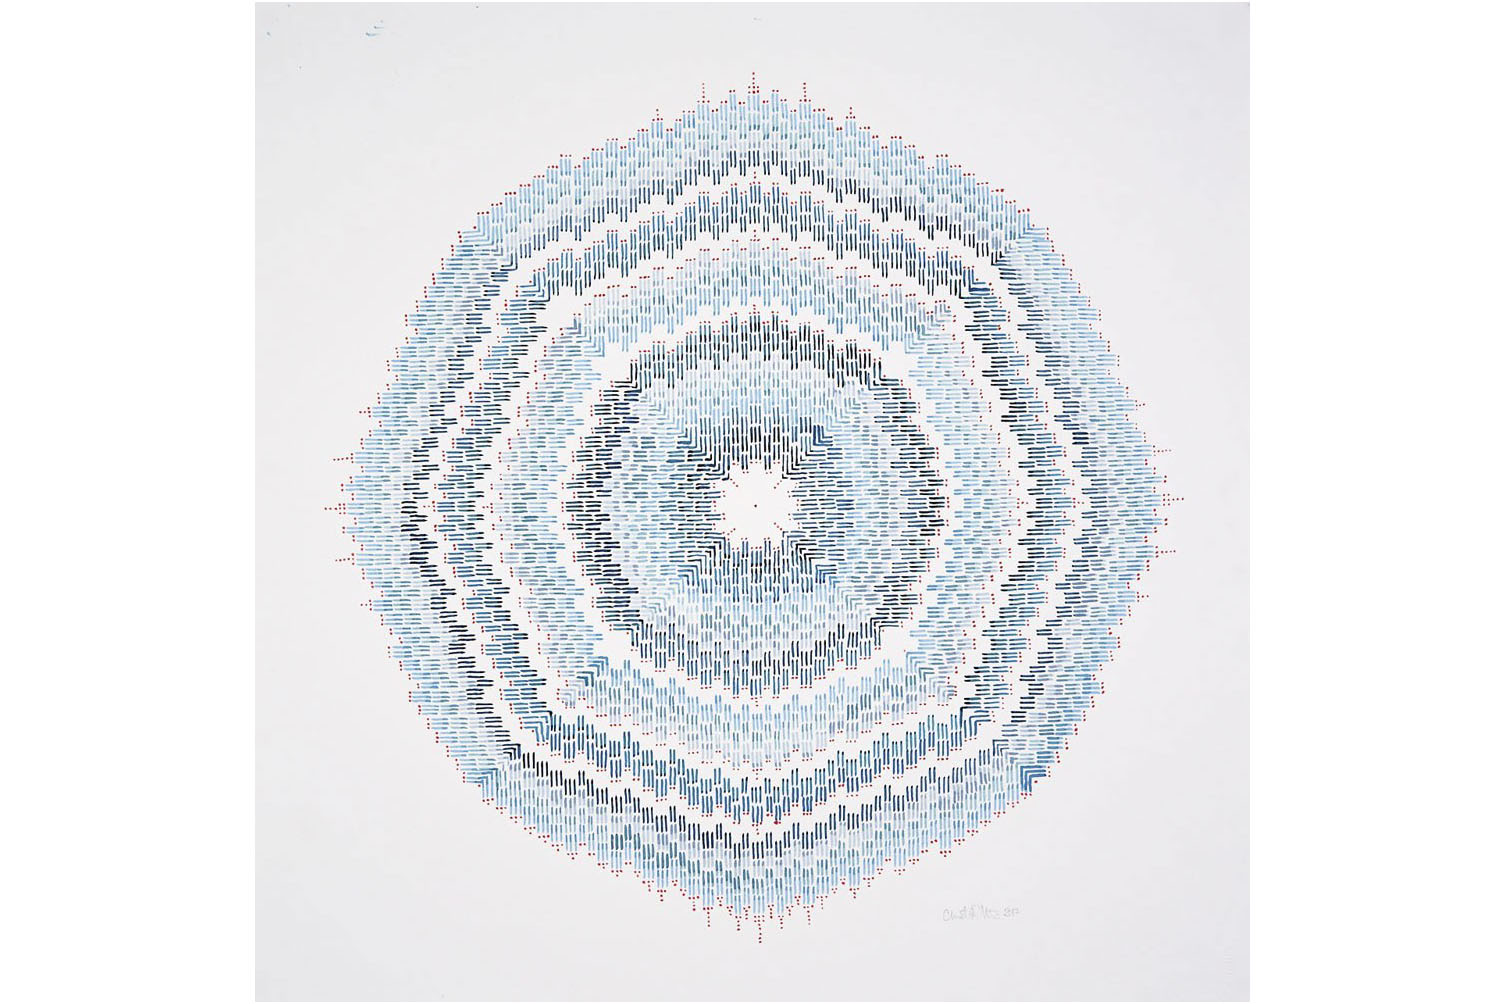 A roughly circular shape made up of thousands of tiny lines, vertical, horizontal, and diagonal, in varying shades of blue, making up a pattern of concentric circles with red dots at the edges of some of the circles. The colors and line work make the shape look like it's vibrating.